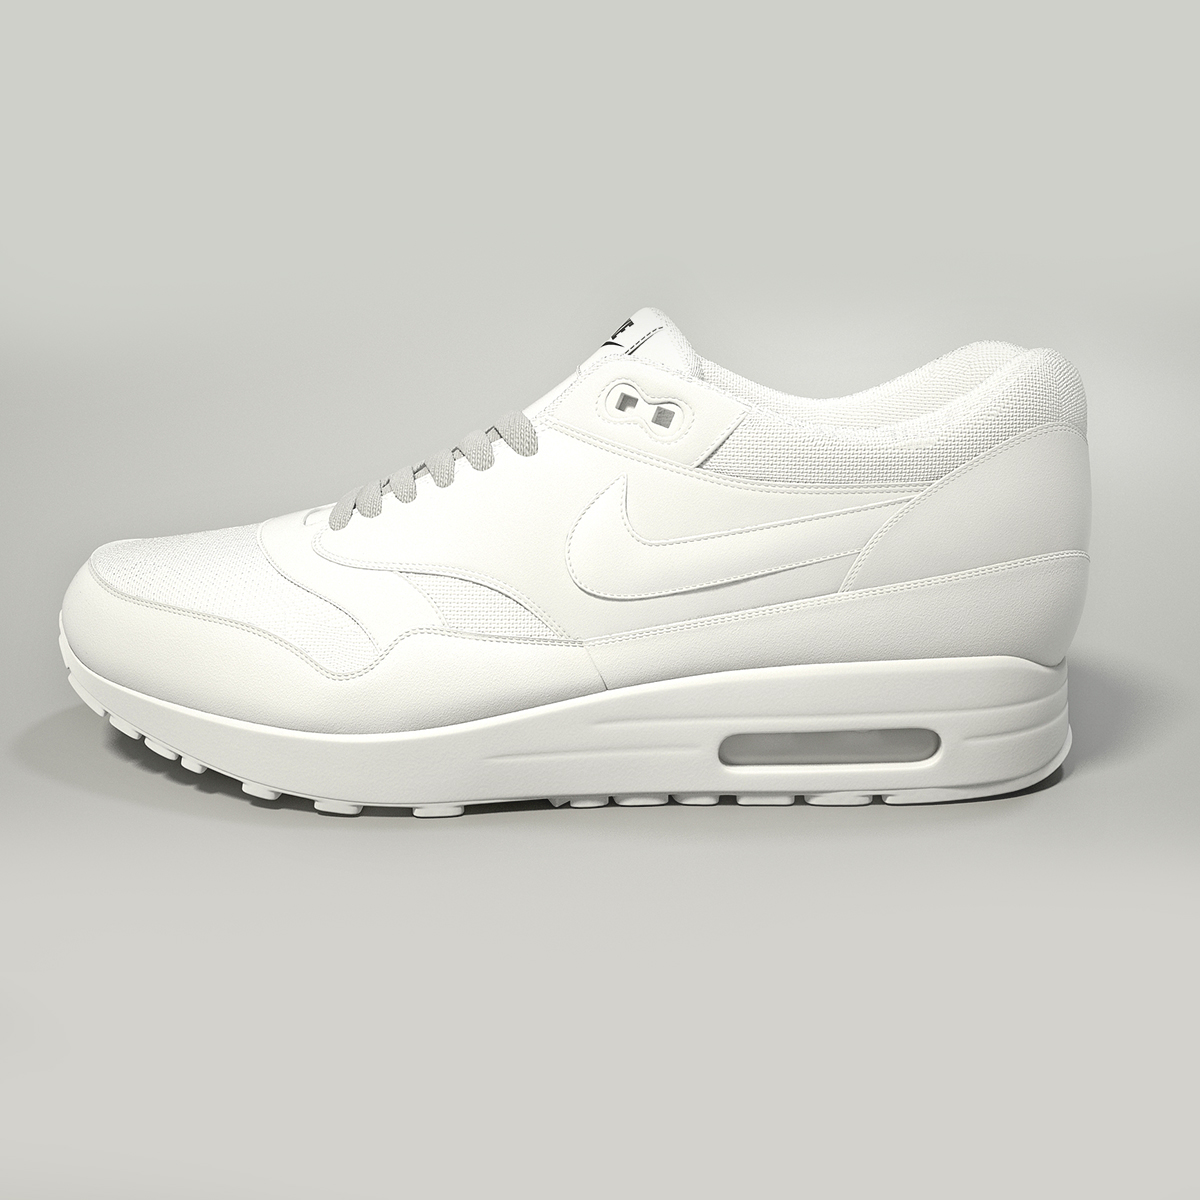 cheap for discount 33bde b0c5d Nike Air Max 1 3D model